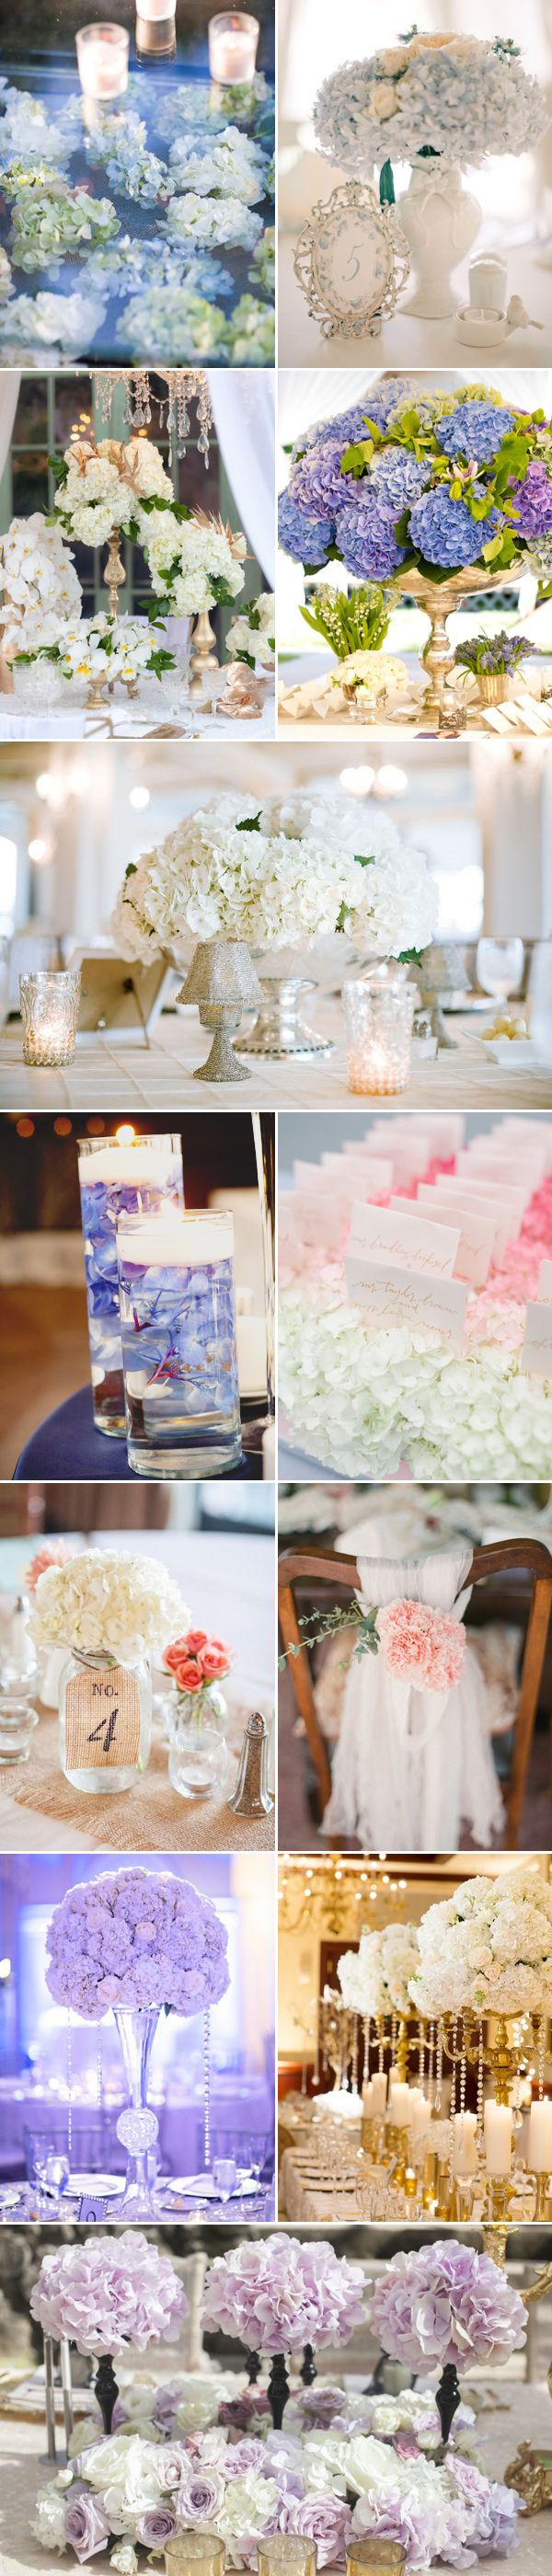 37 Beautiful Ways to decorate your wedding with hydrangeas - Reception Decoration